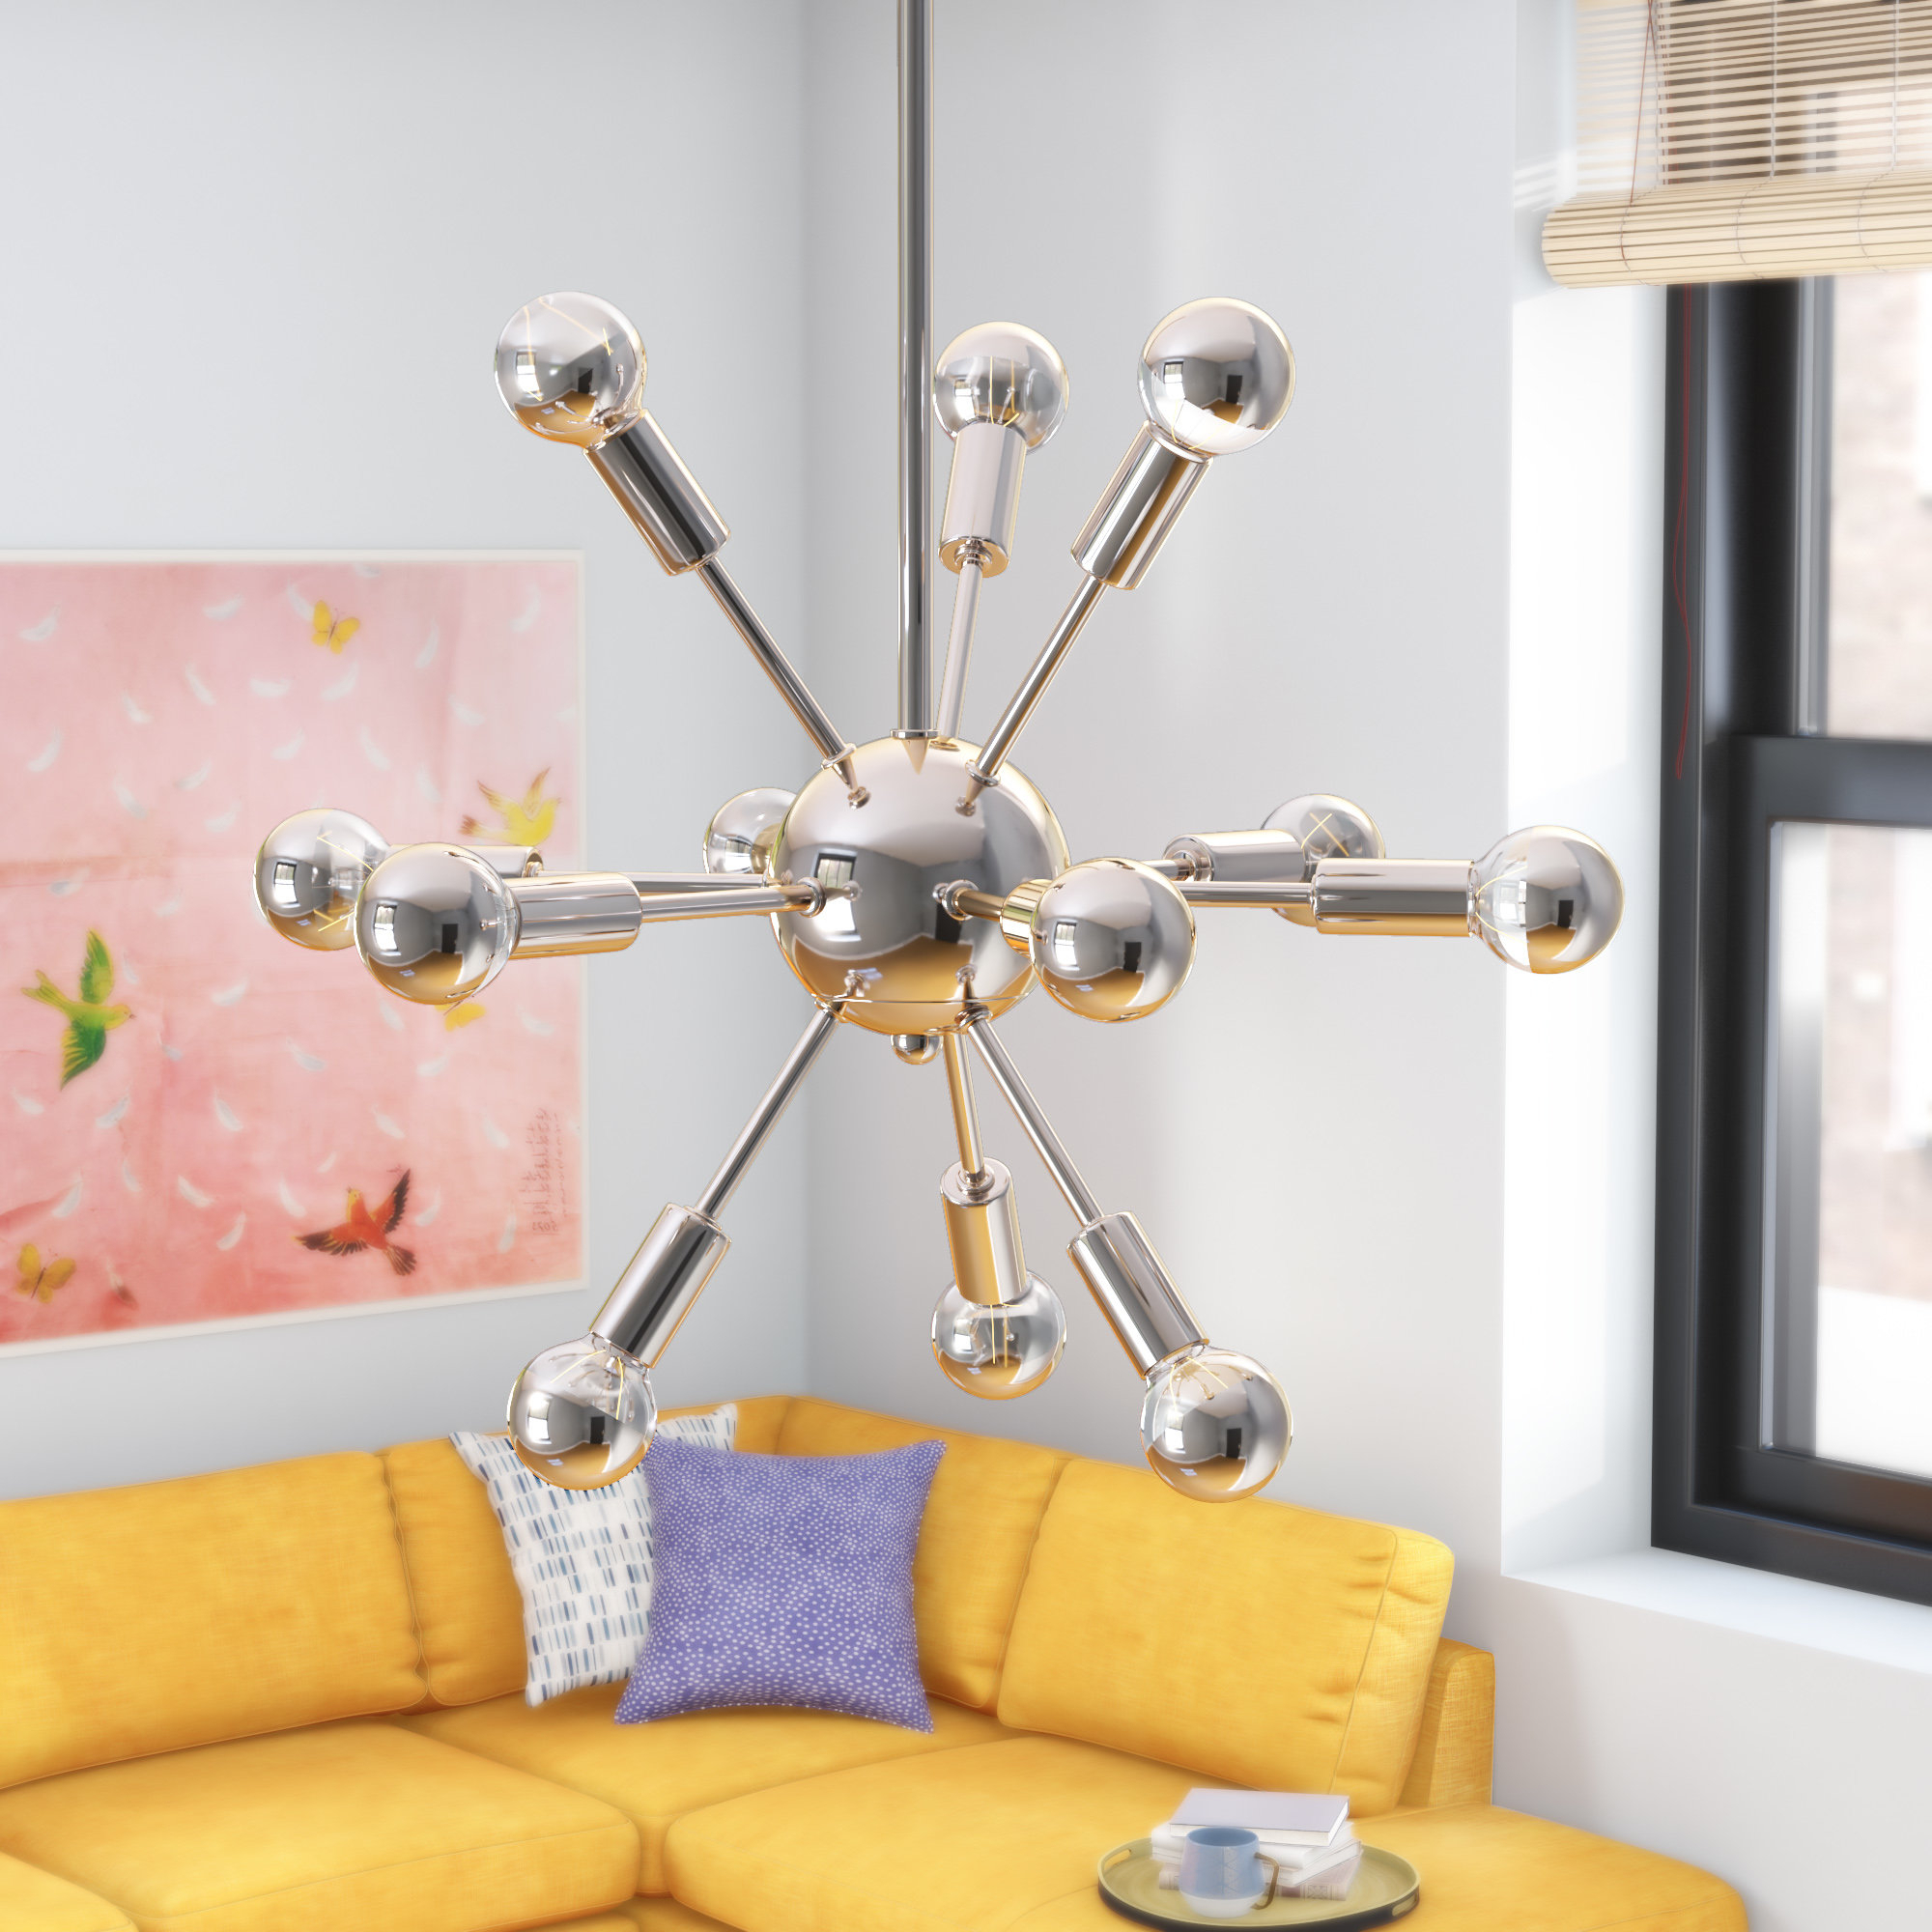 Zimmerman 12 Light Chandelier Within 2019 Bacchus 12 Light Sputnik Chandeliers (Gallery 15 of 20)